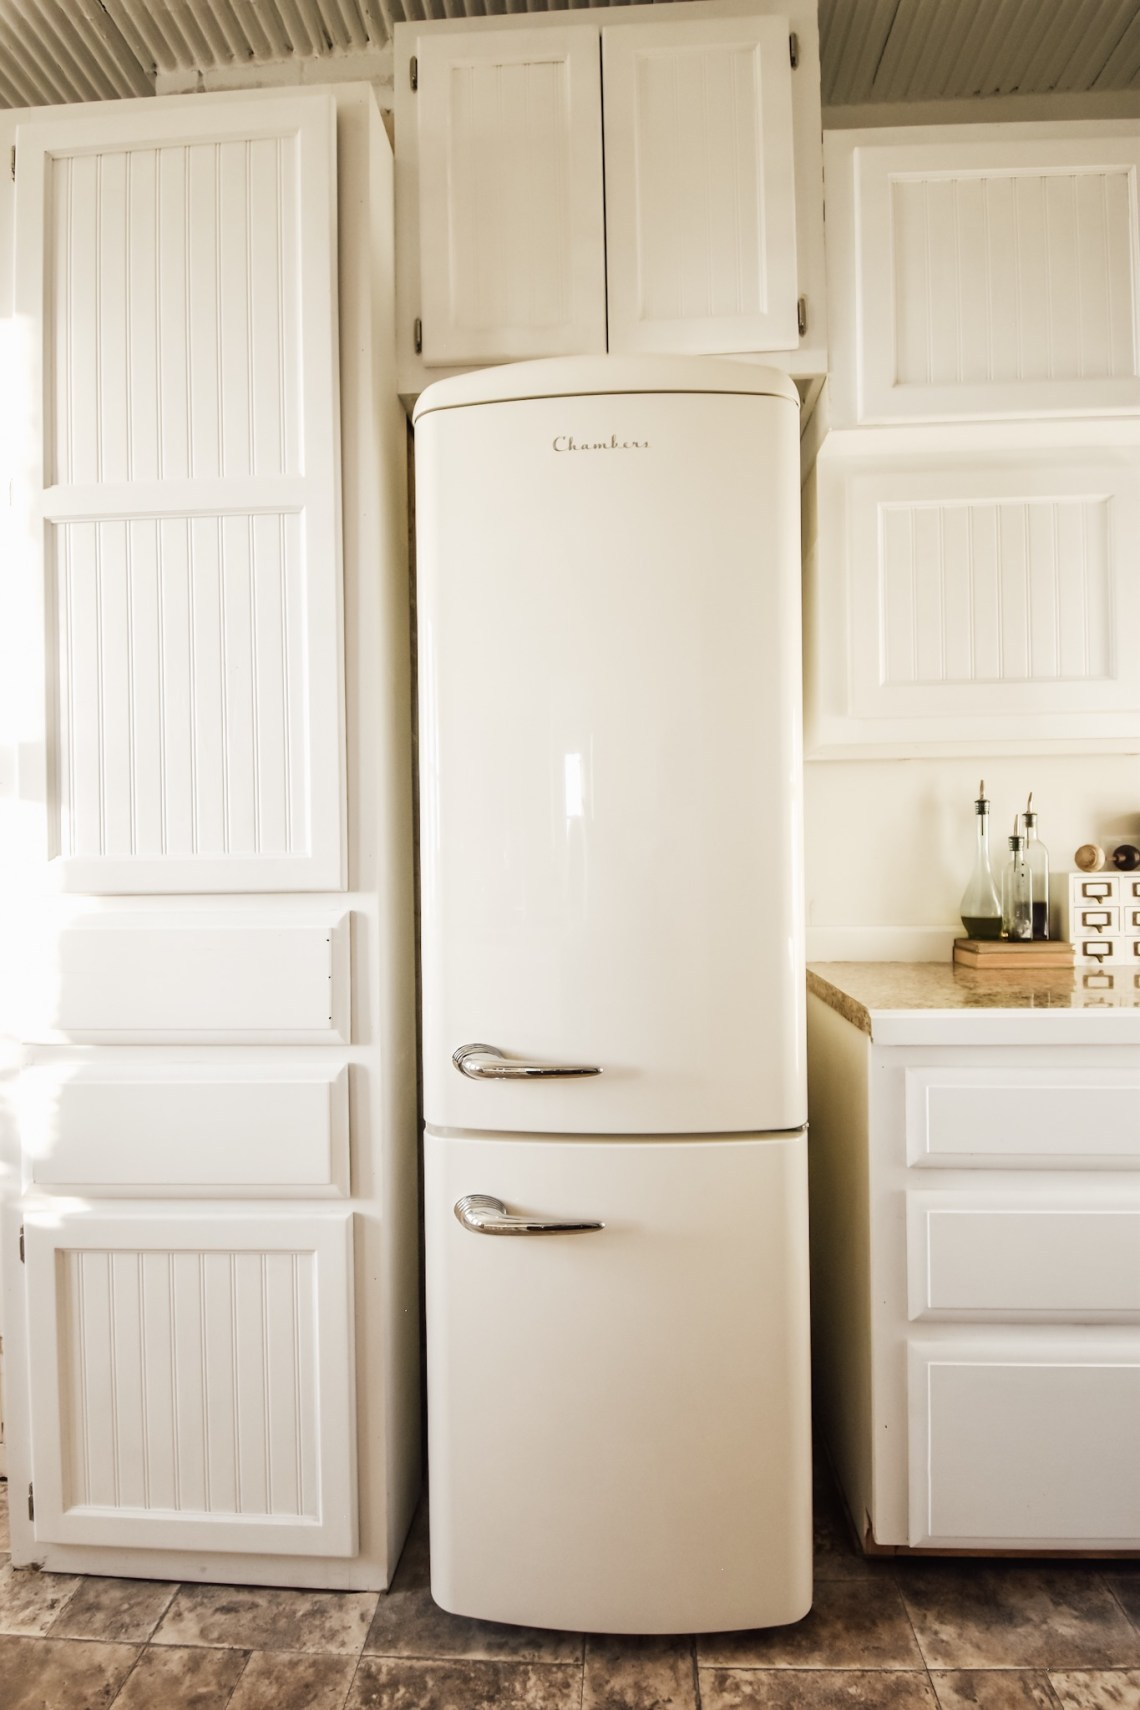 Our New Vintage Inspired Refrigerator